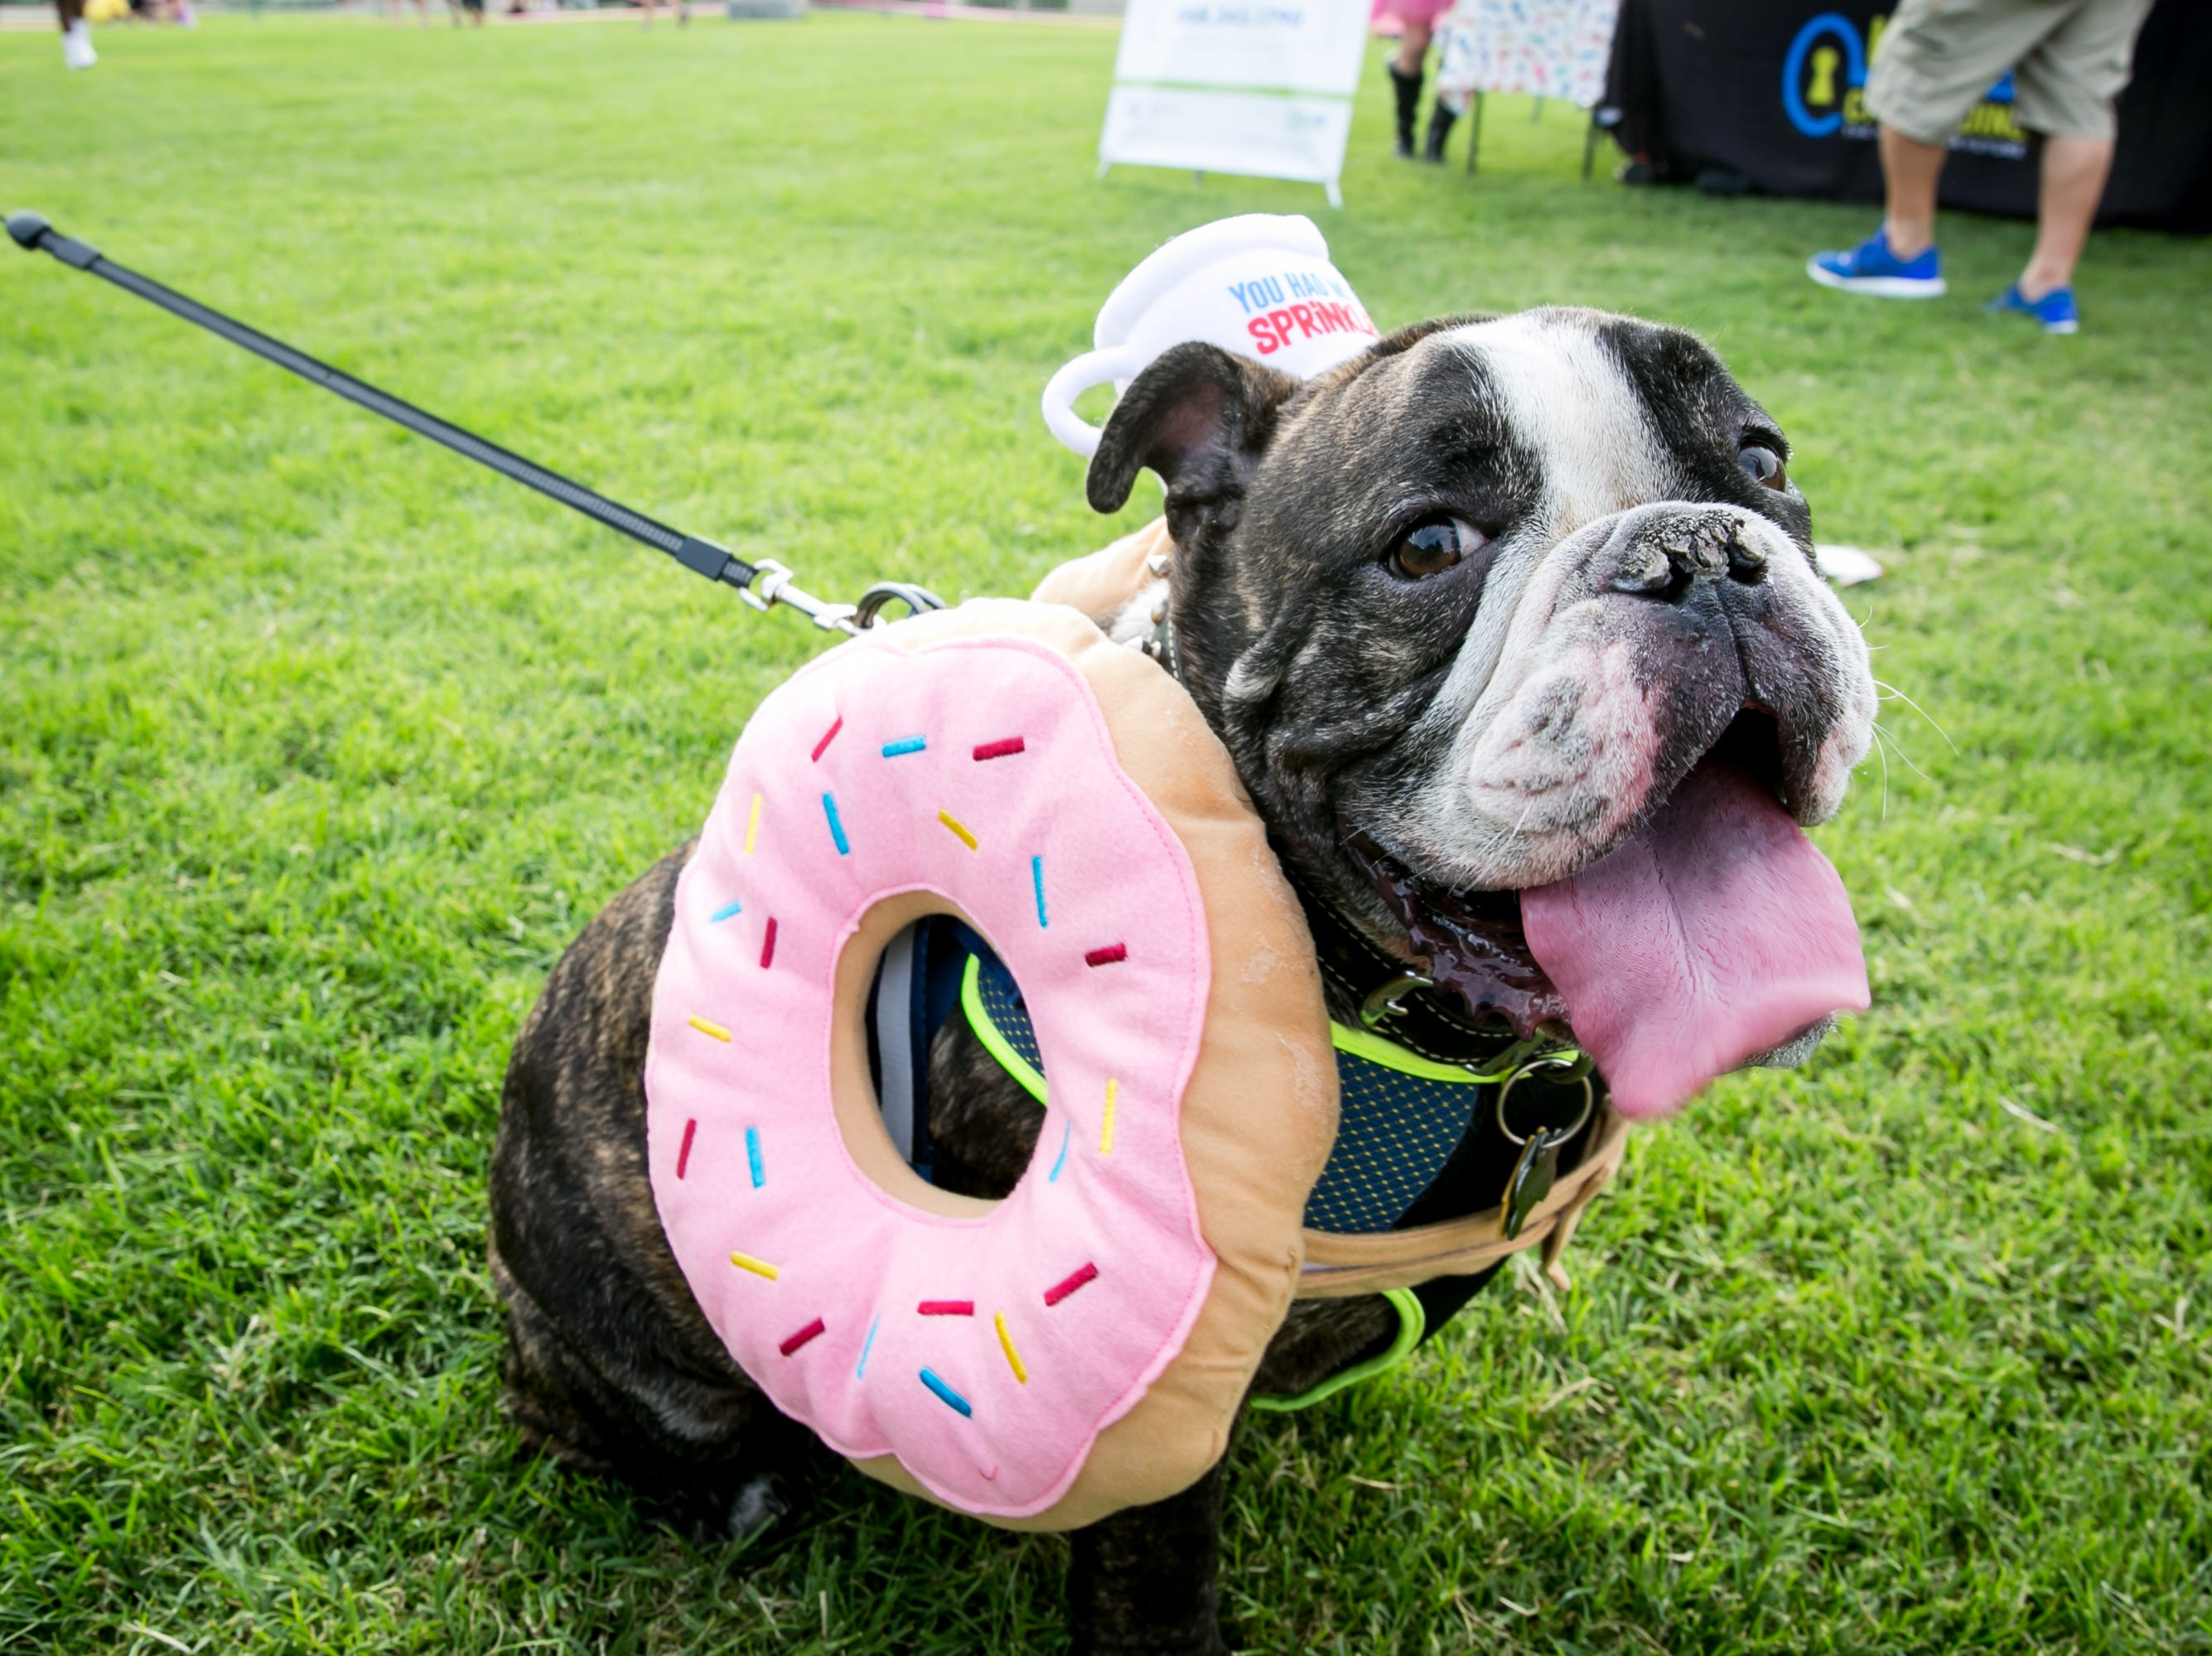 An adorable donut poses for a photo during Howl-o-Ween at Hance Park on Sunday, October 28, 2018.